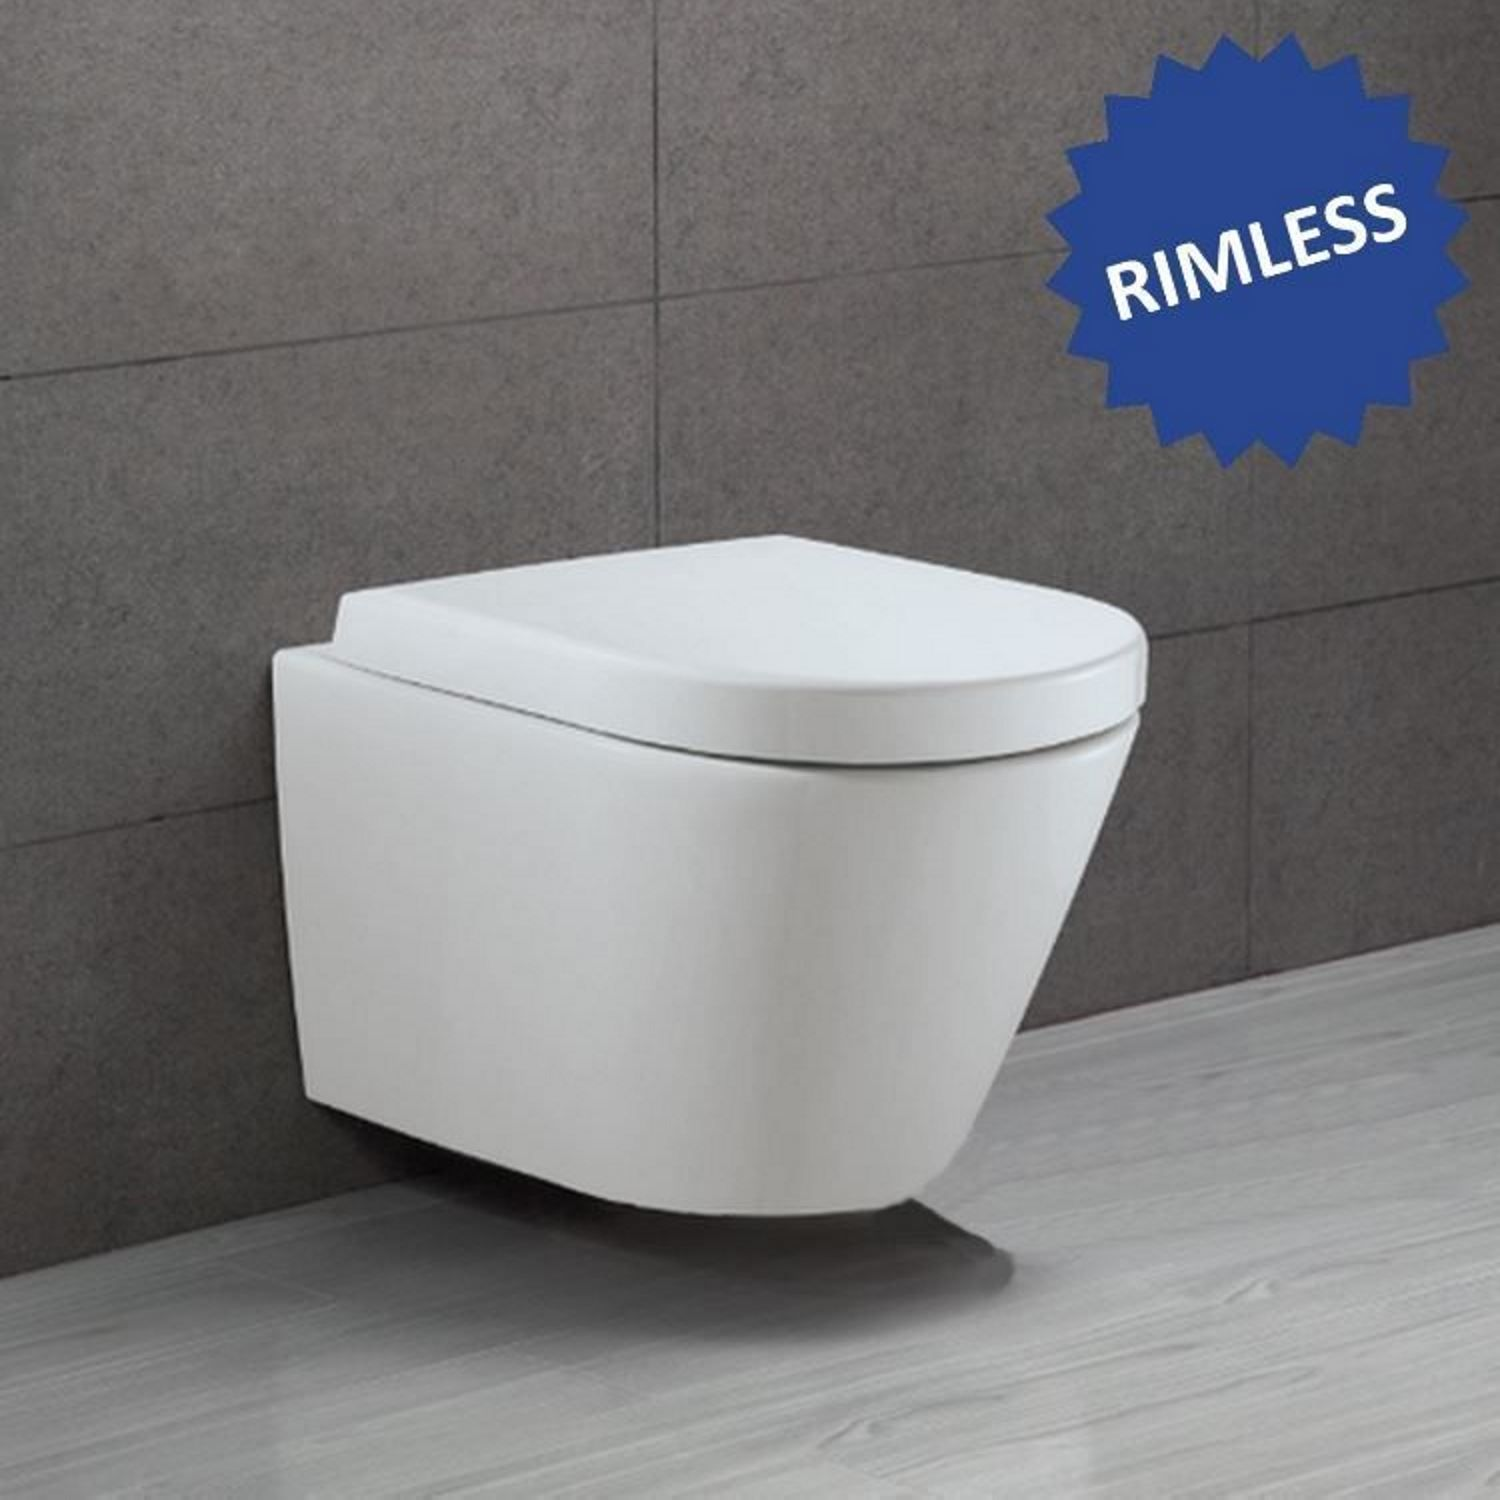 Compact Hangtoilet Hangtoilet Alterna Opus 2 Rimless Keramiek 3m Coating Softclose